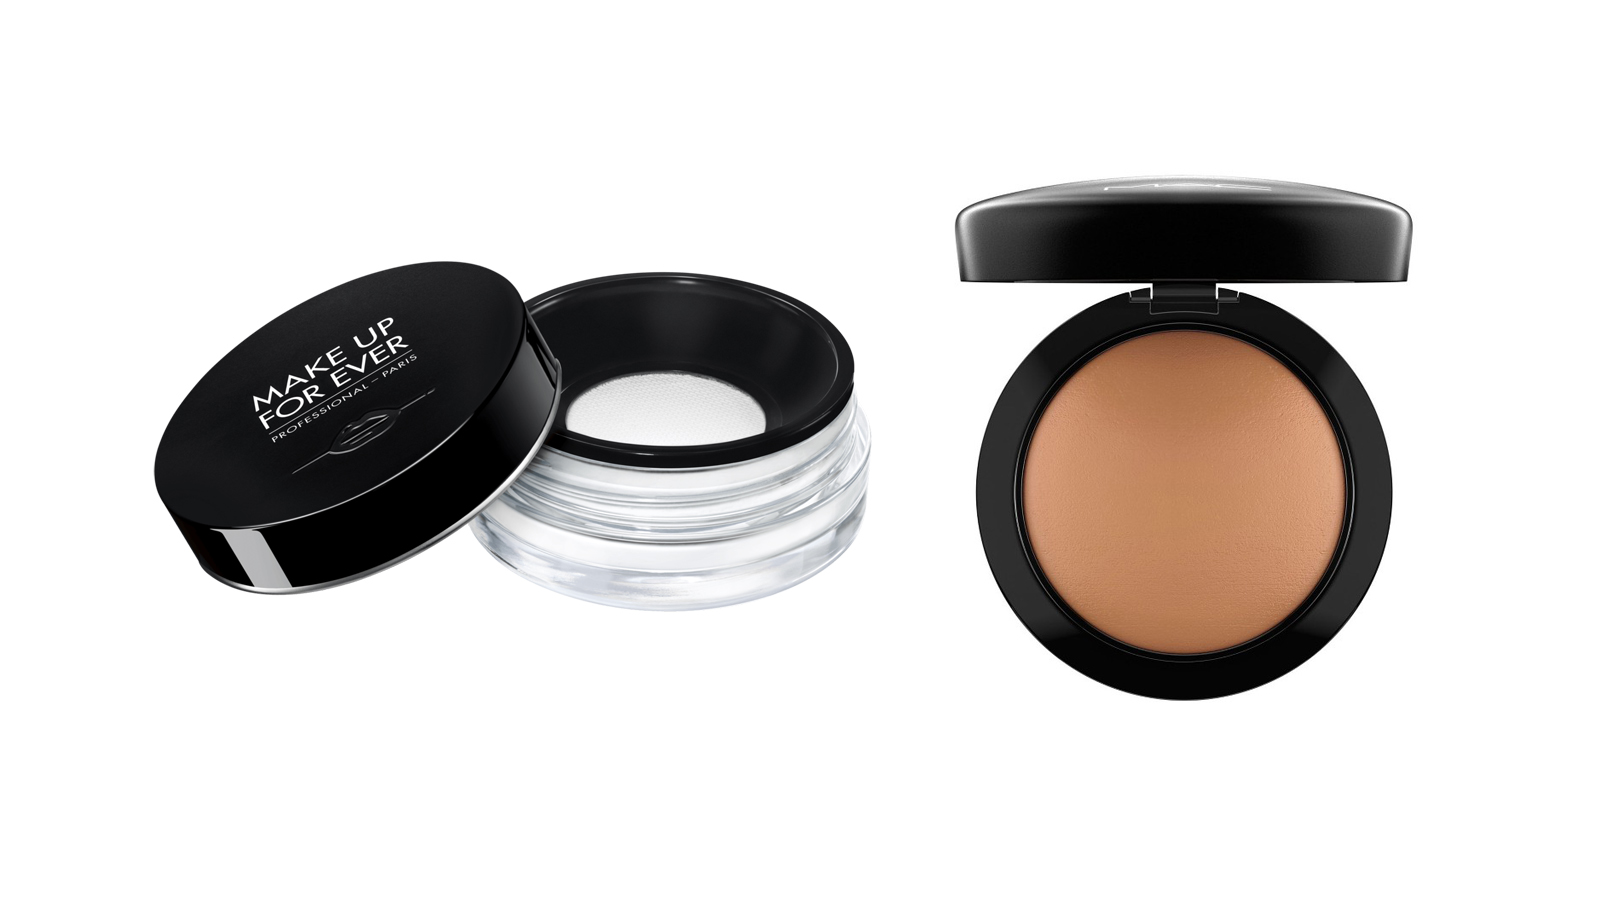 Make Up For Ever Ultra HD Loose Powder and Debenhams MAC Mineralize Skinfinish